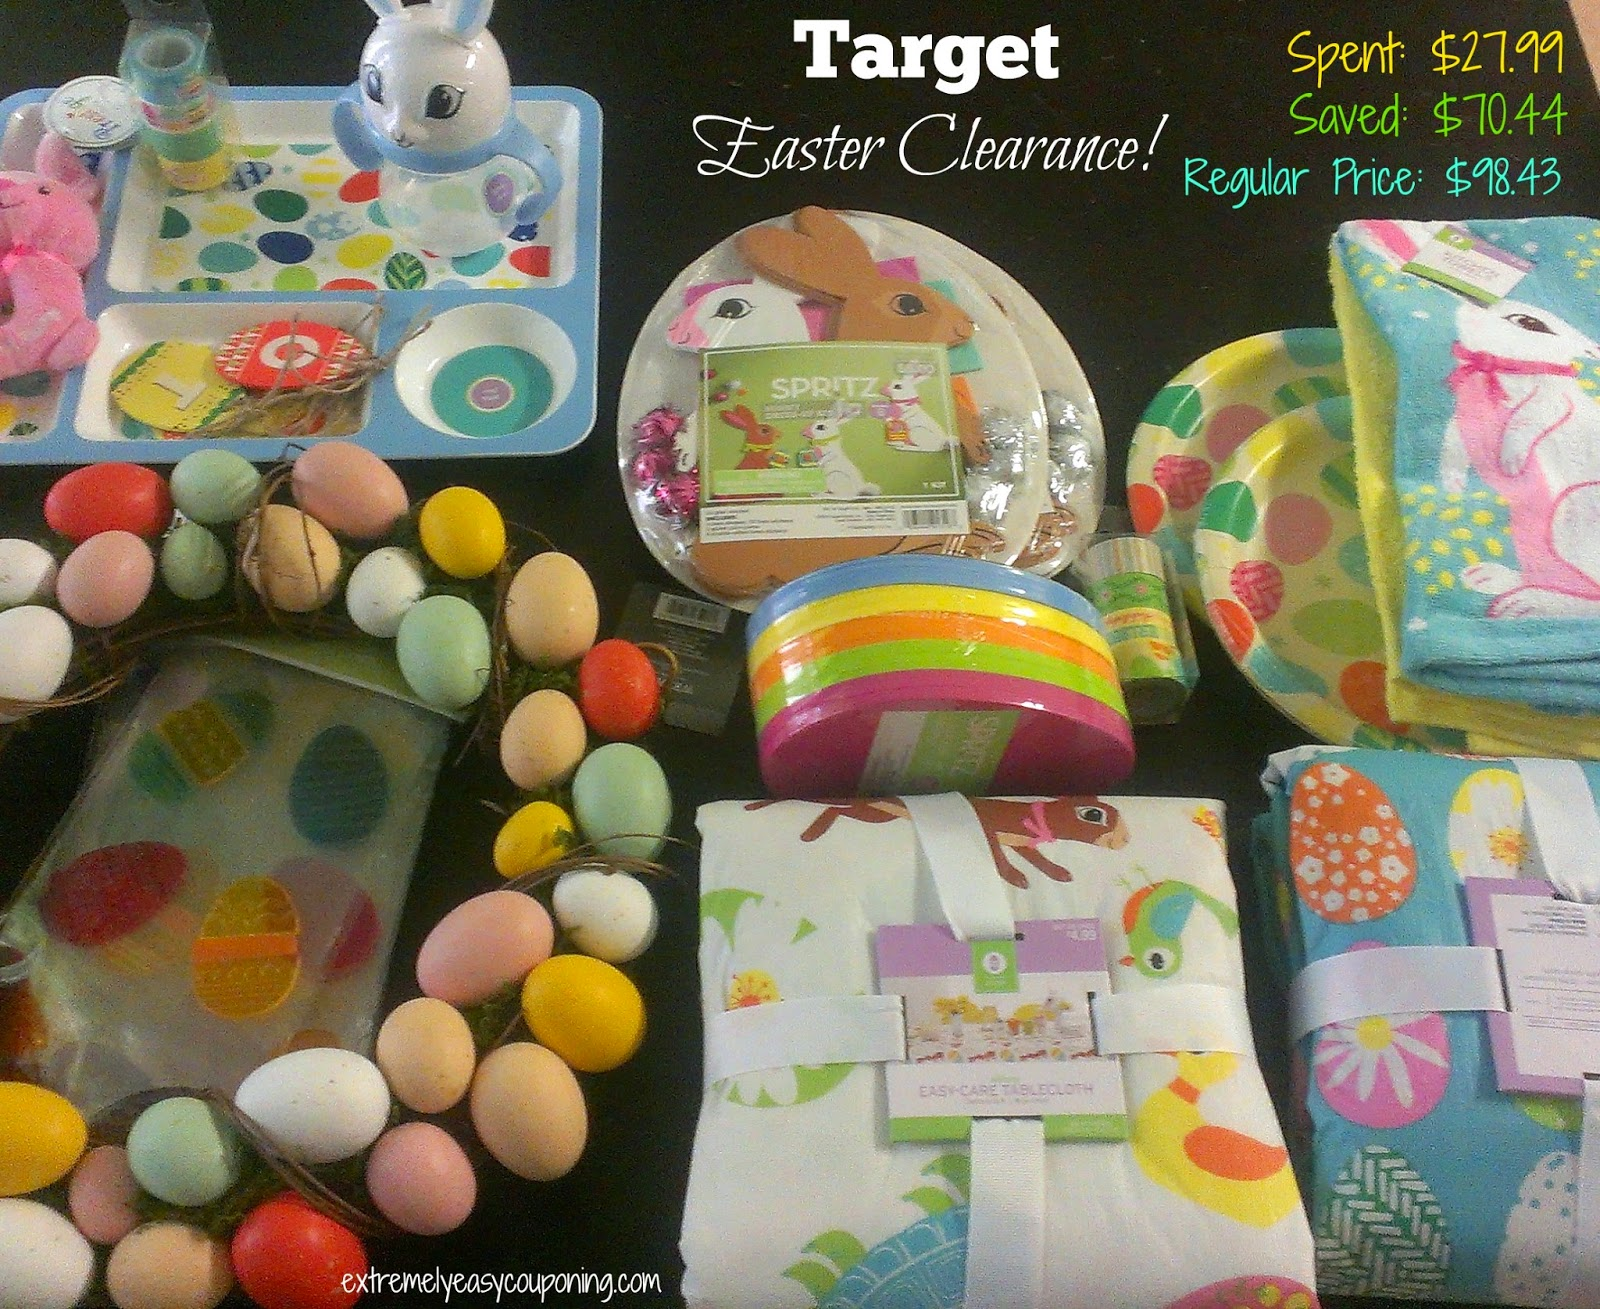 Extremely Easy Couponing Target Easter Clearance